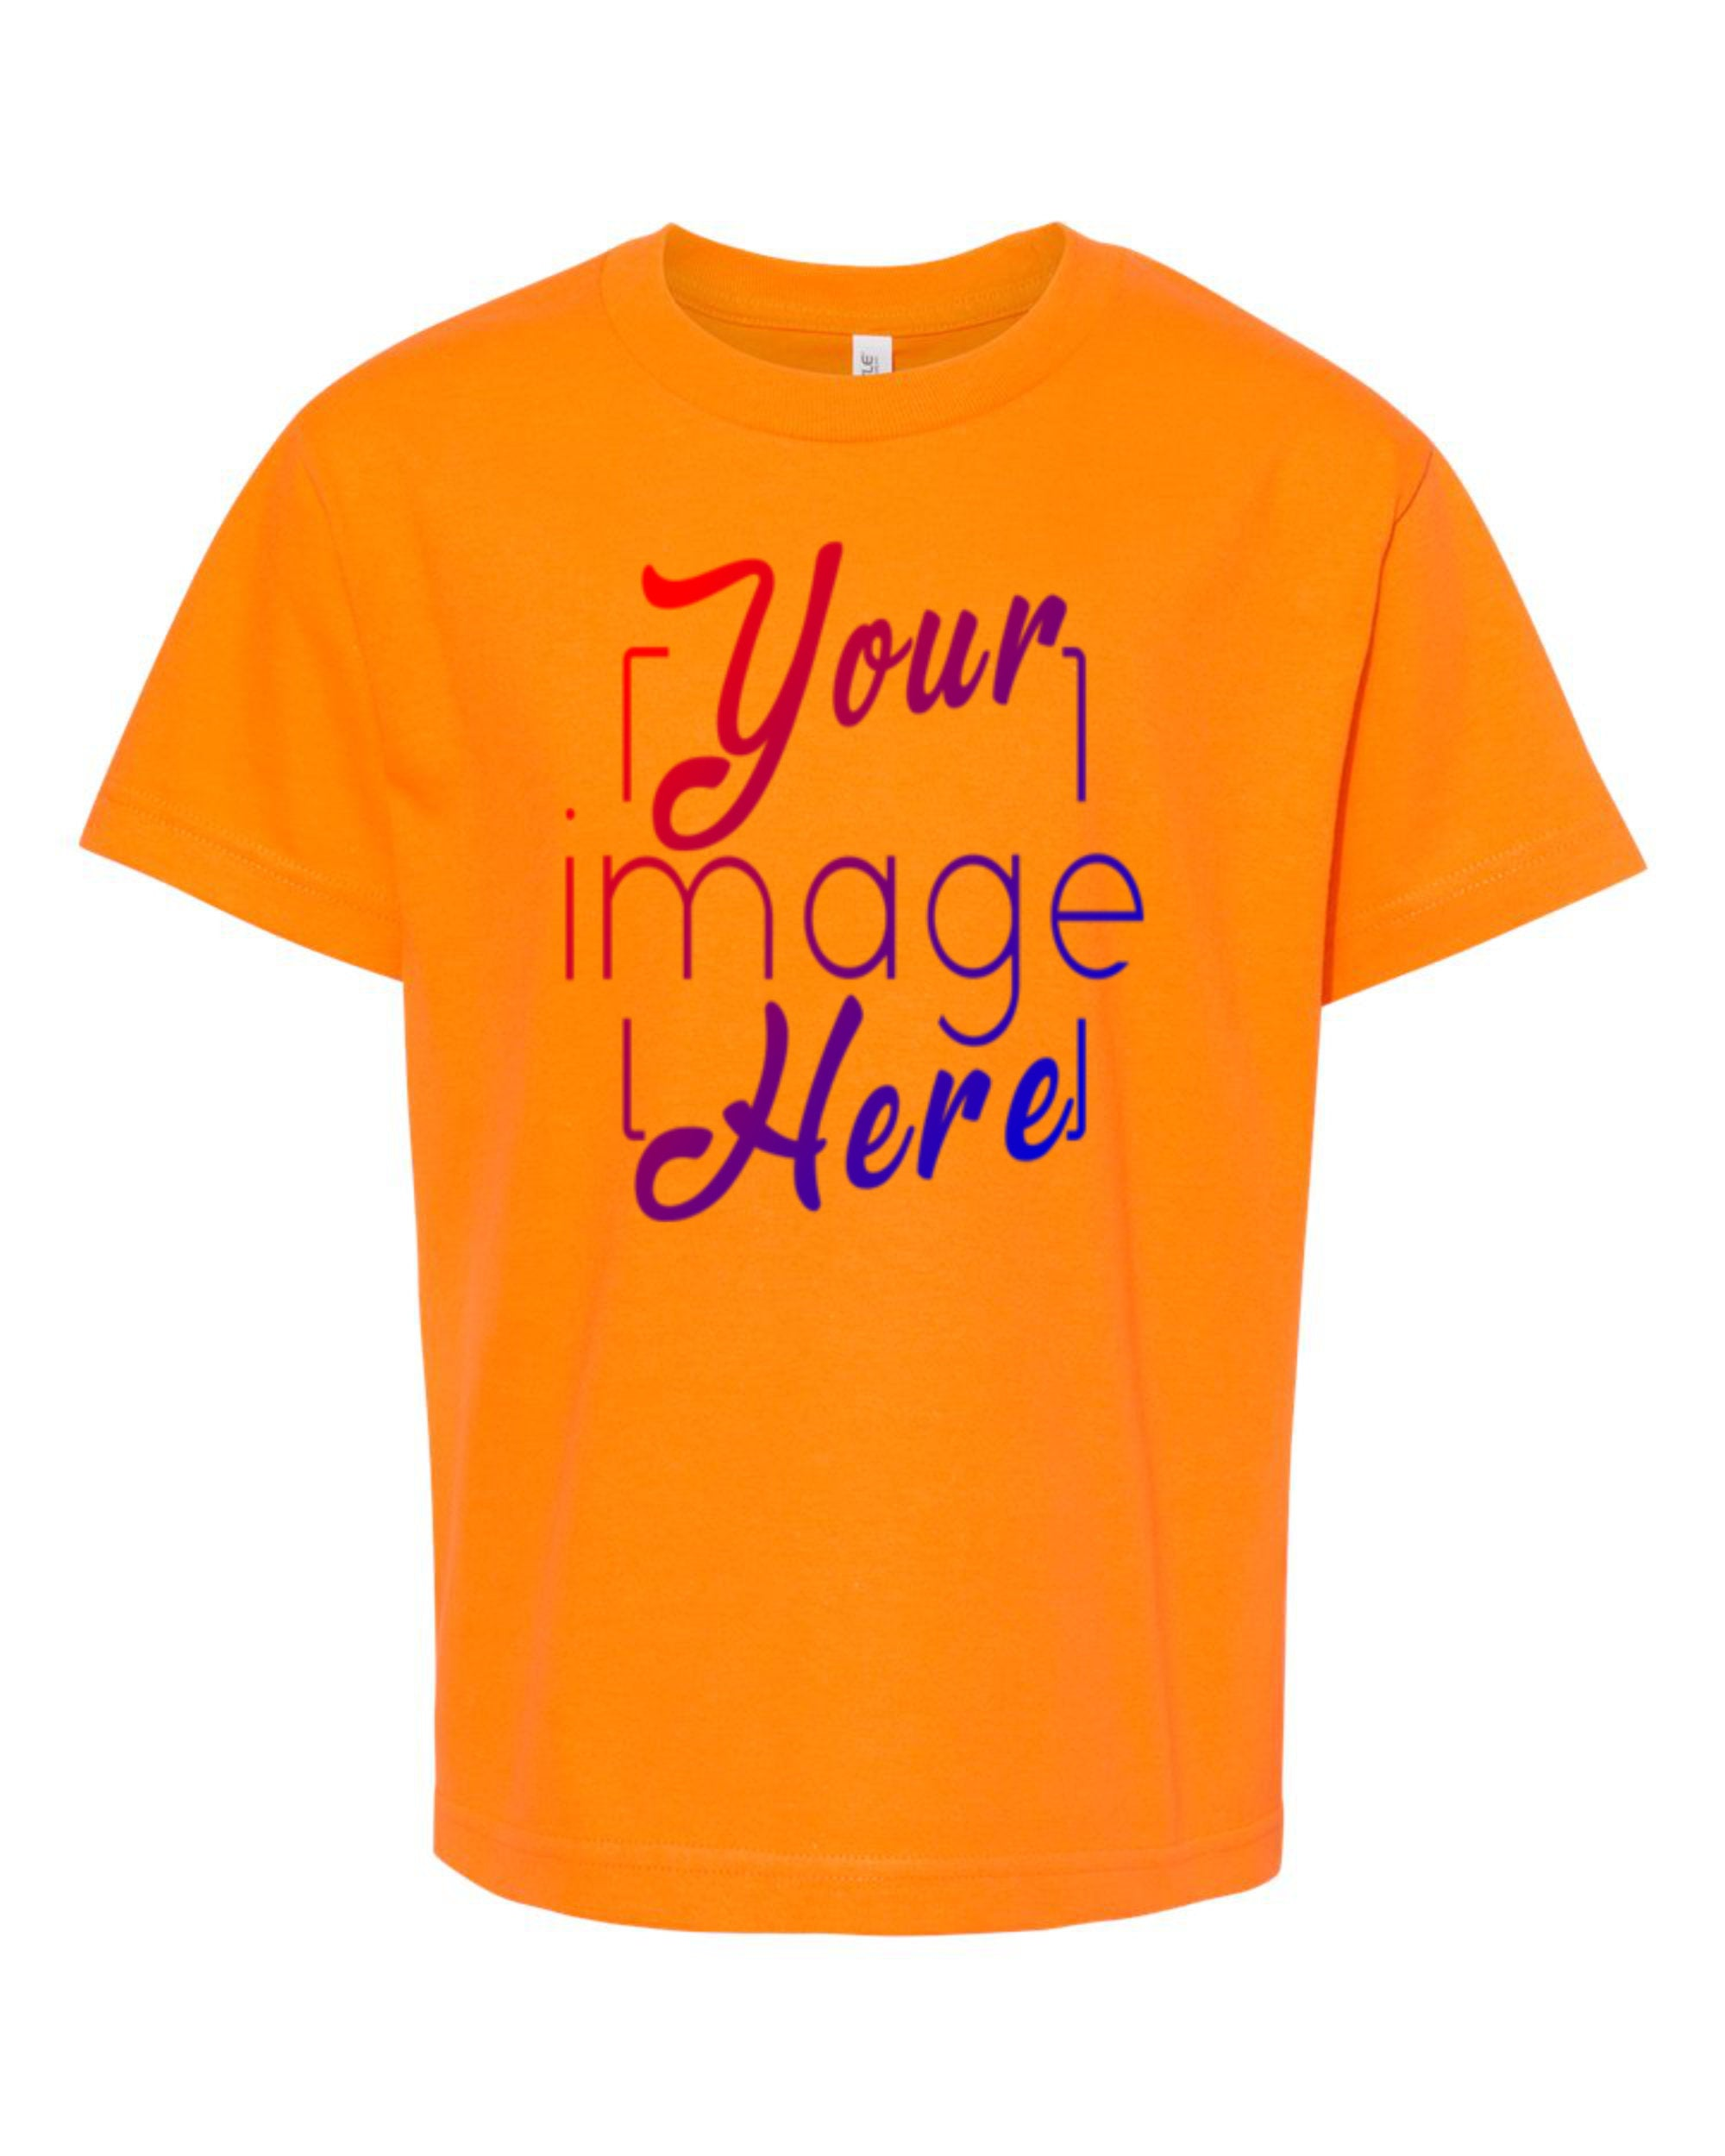 Front Image of a Youth Alstyle T-shirt in Orange for Custom Printing